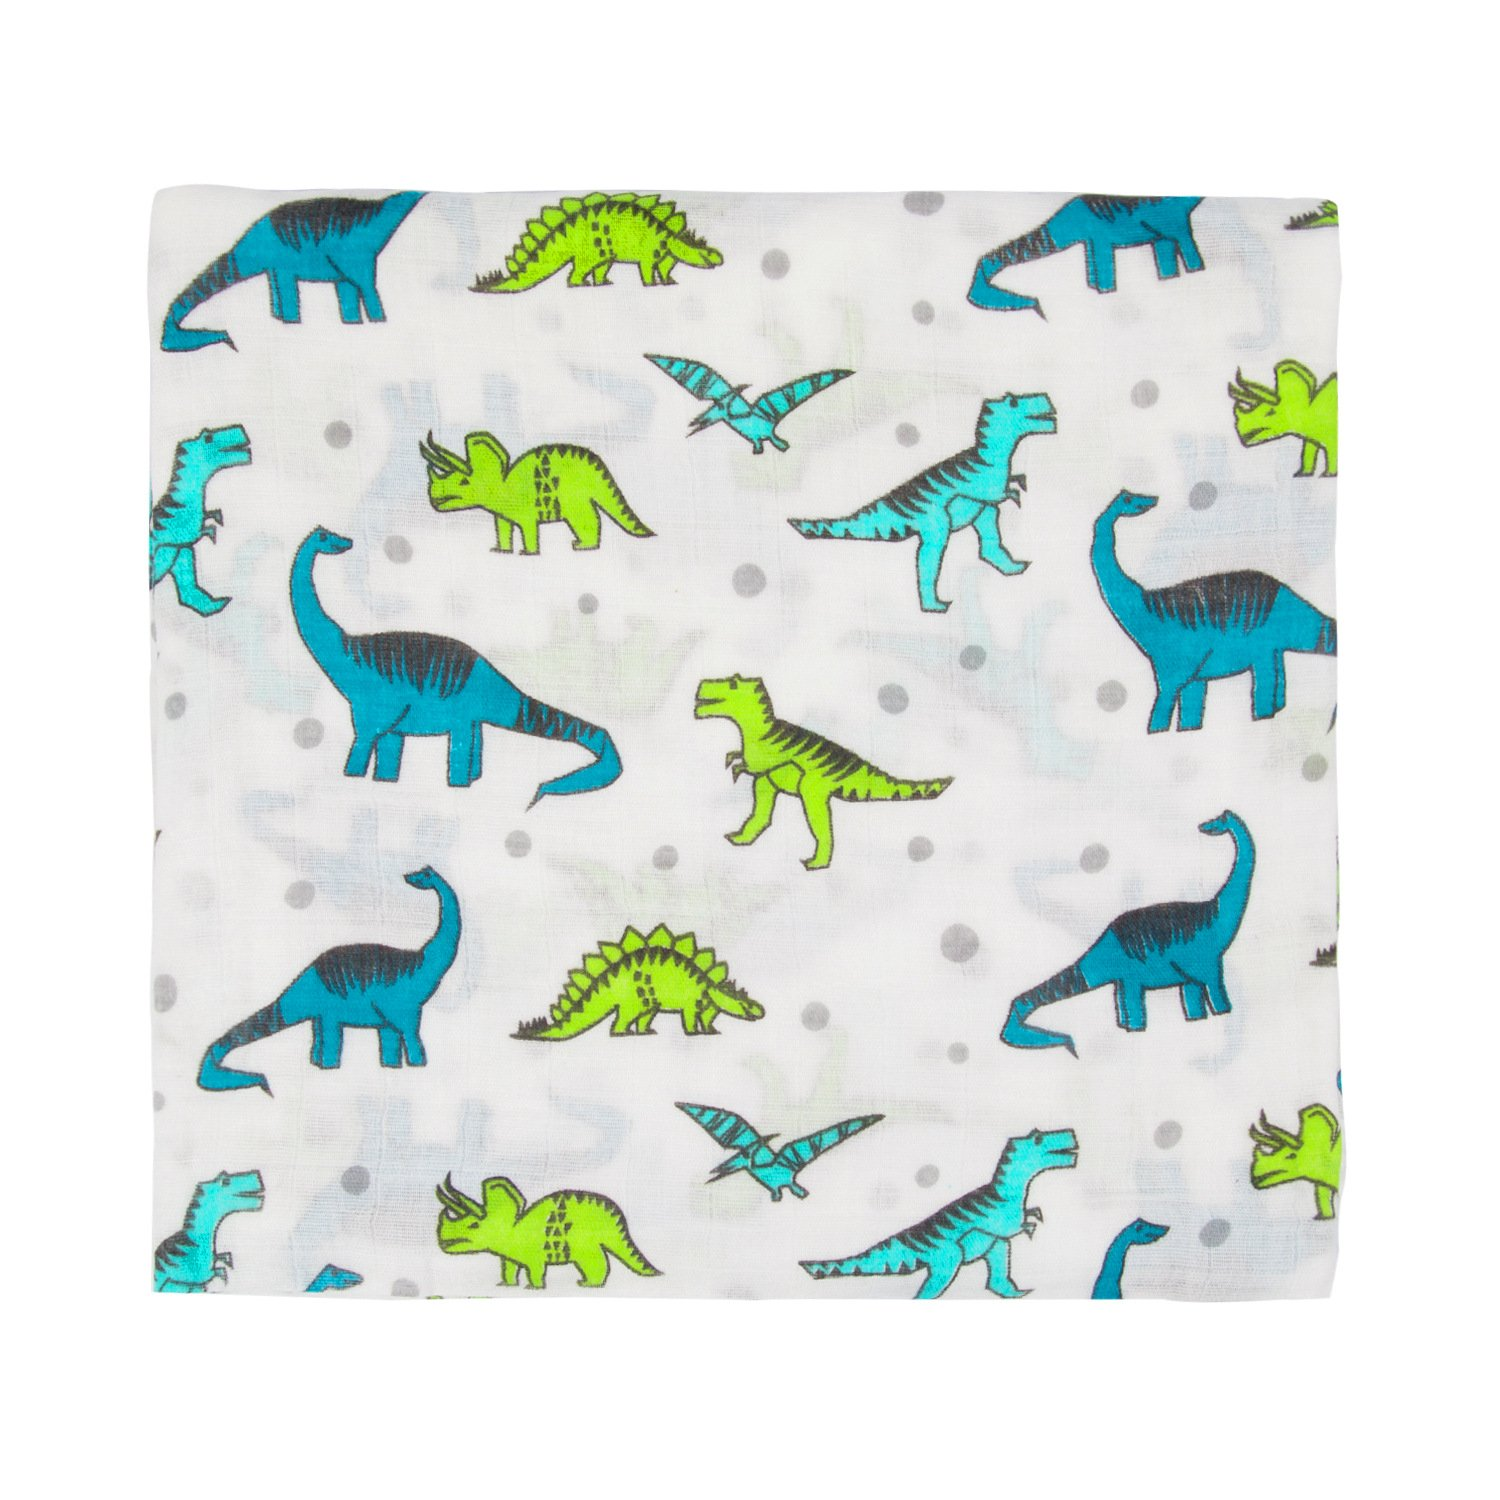 "Muslin Baby Swaddle Blanket, 44""x44"" 100% Cotton Soft Unisex for Boys or Girls Printed Floral Nursing Receiving Swaddle Wrap Burp Cloth Stroller Cover (Dinosaur)"